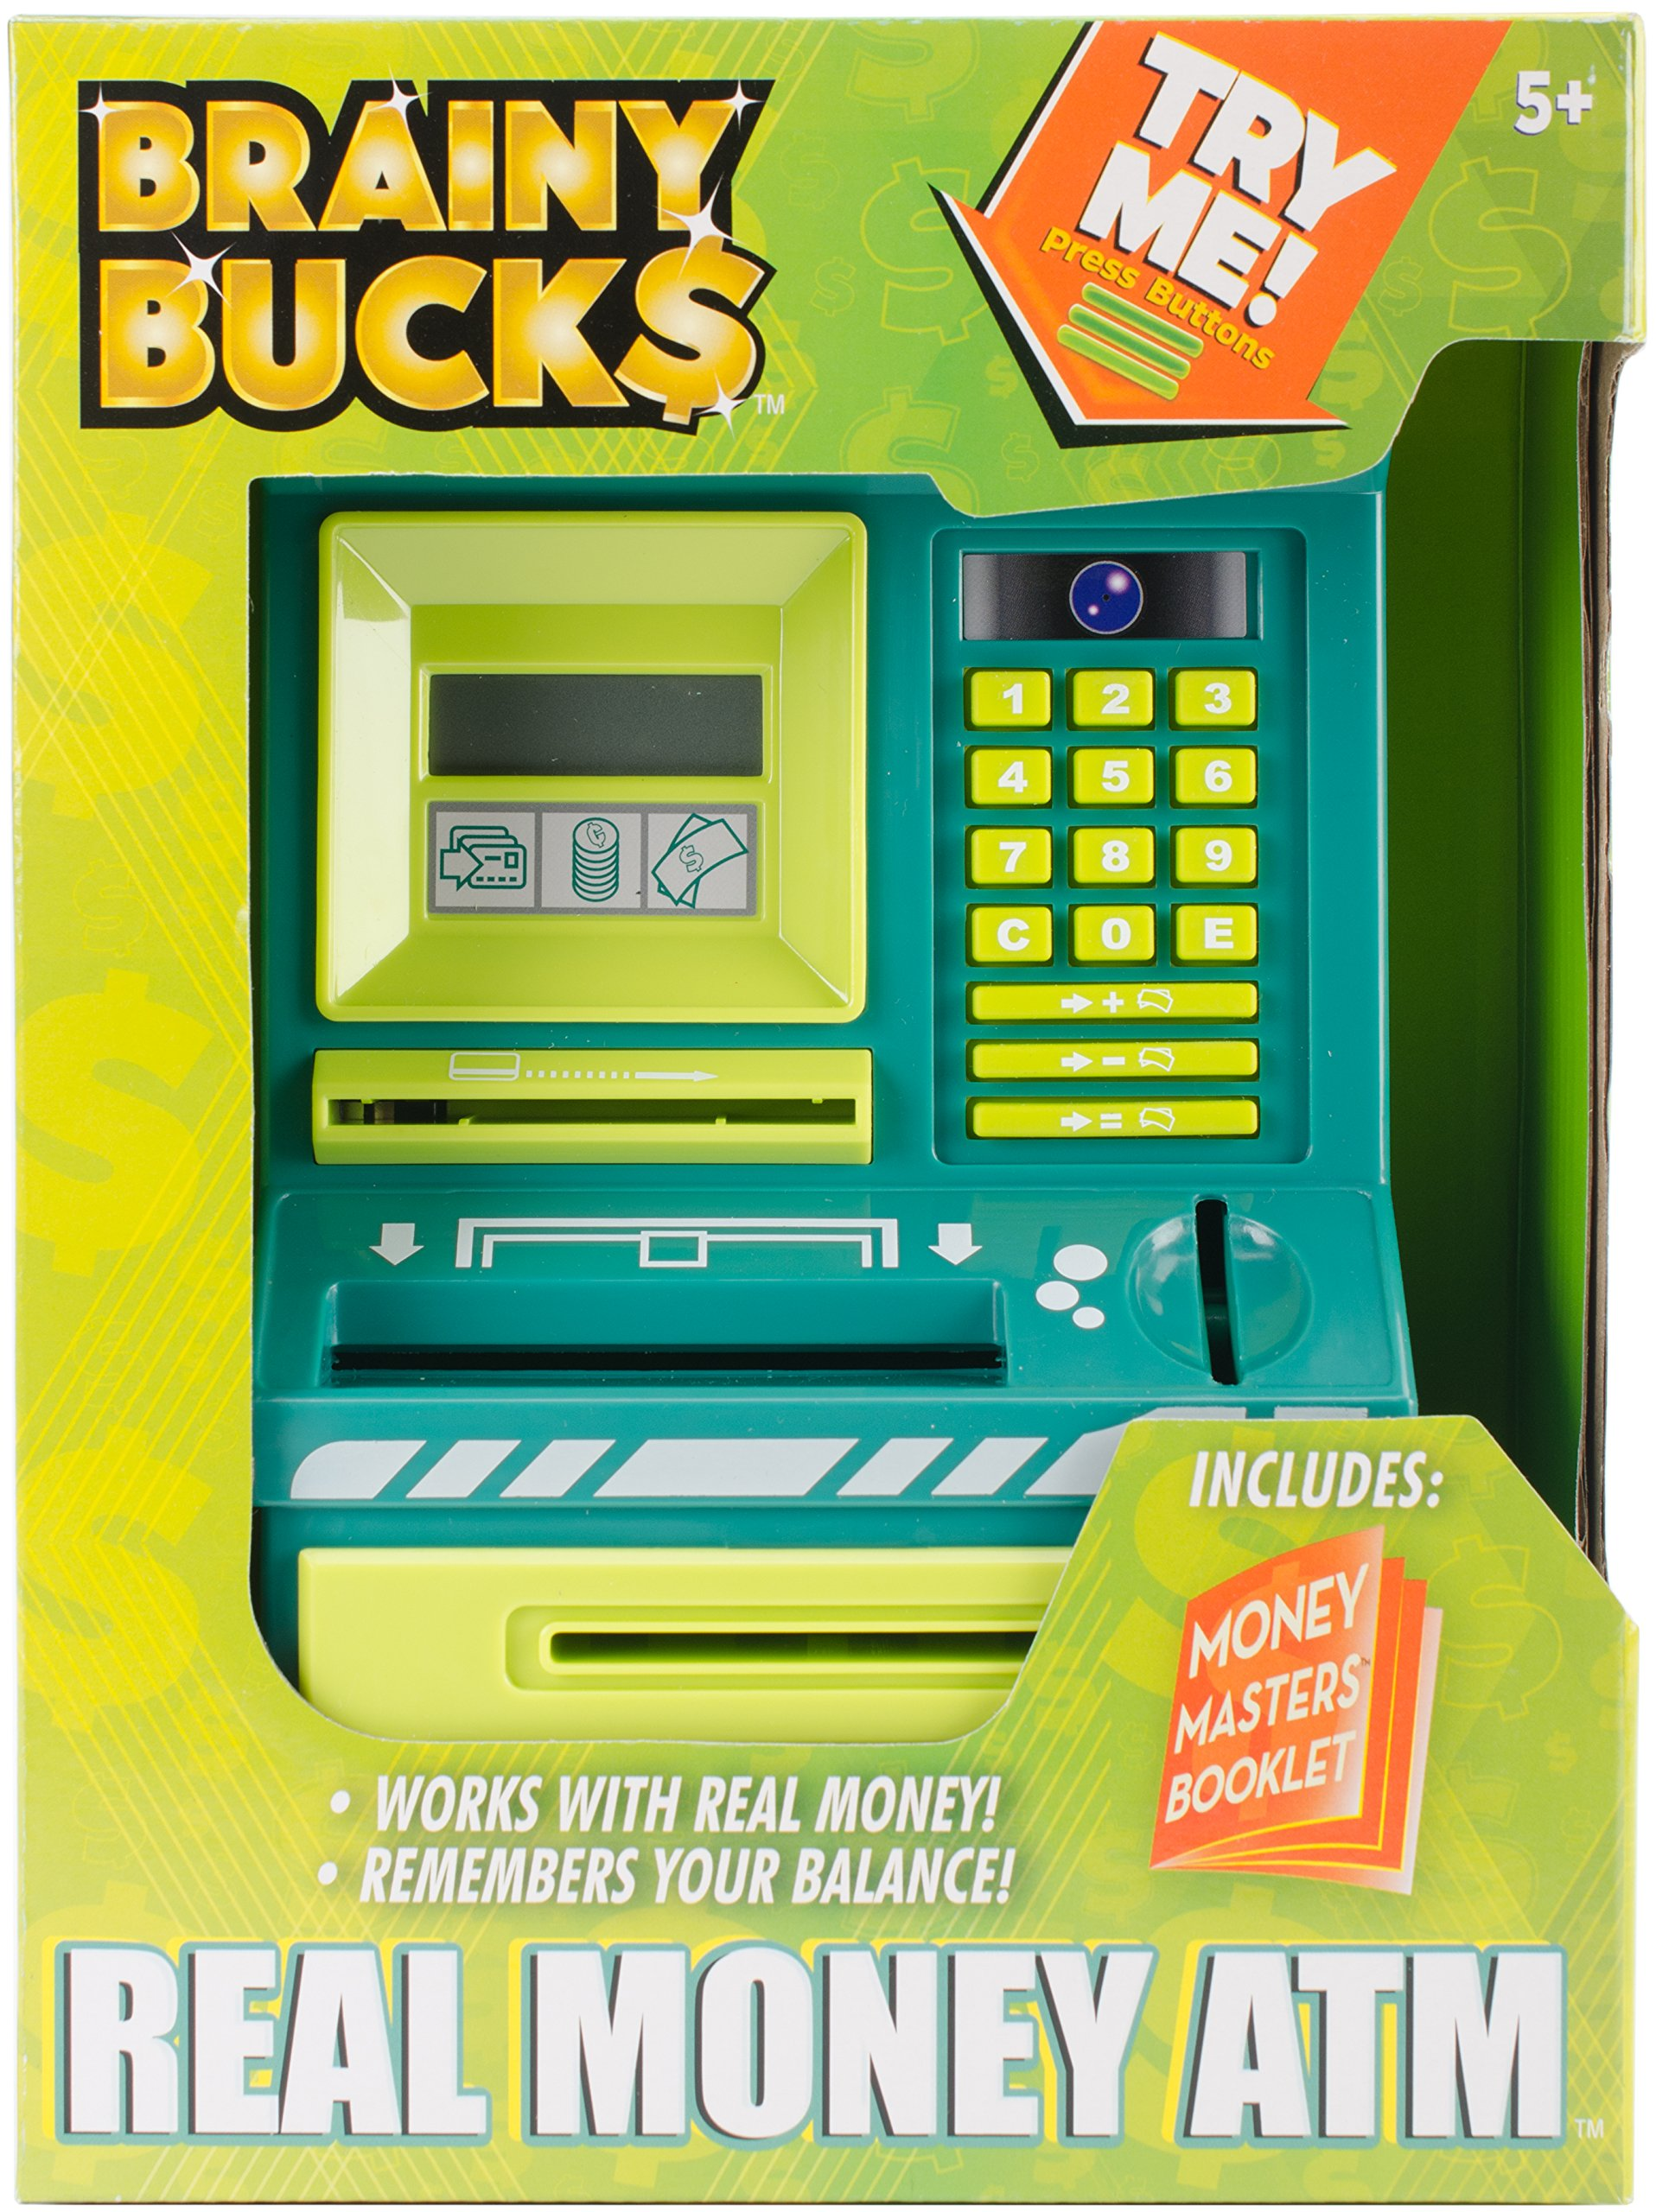 Brainy Bucks Real Money ATM Toy by Brainy Bucks